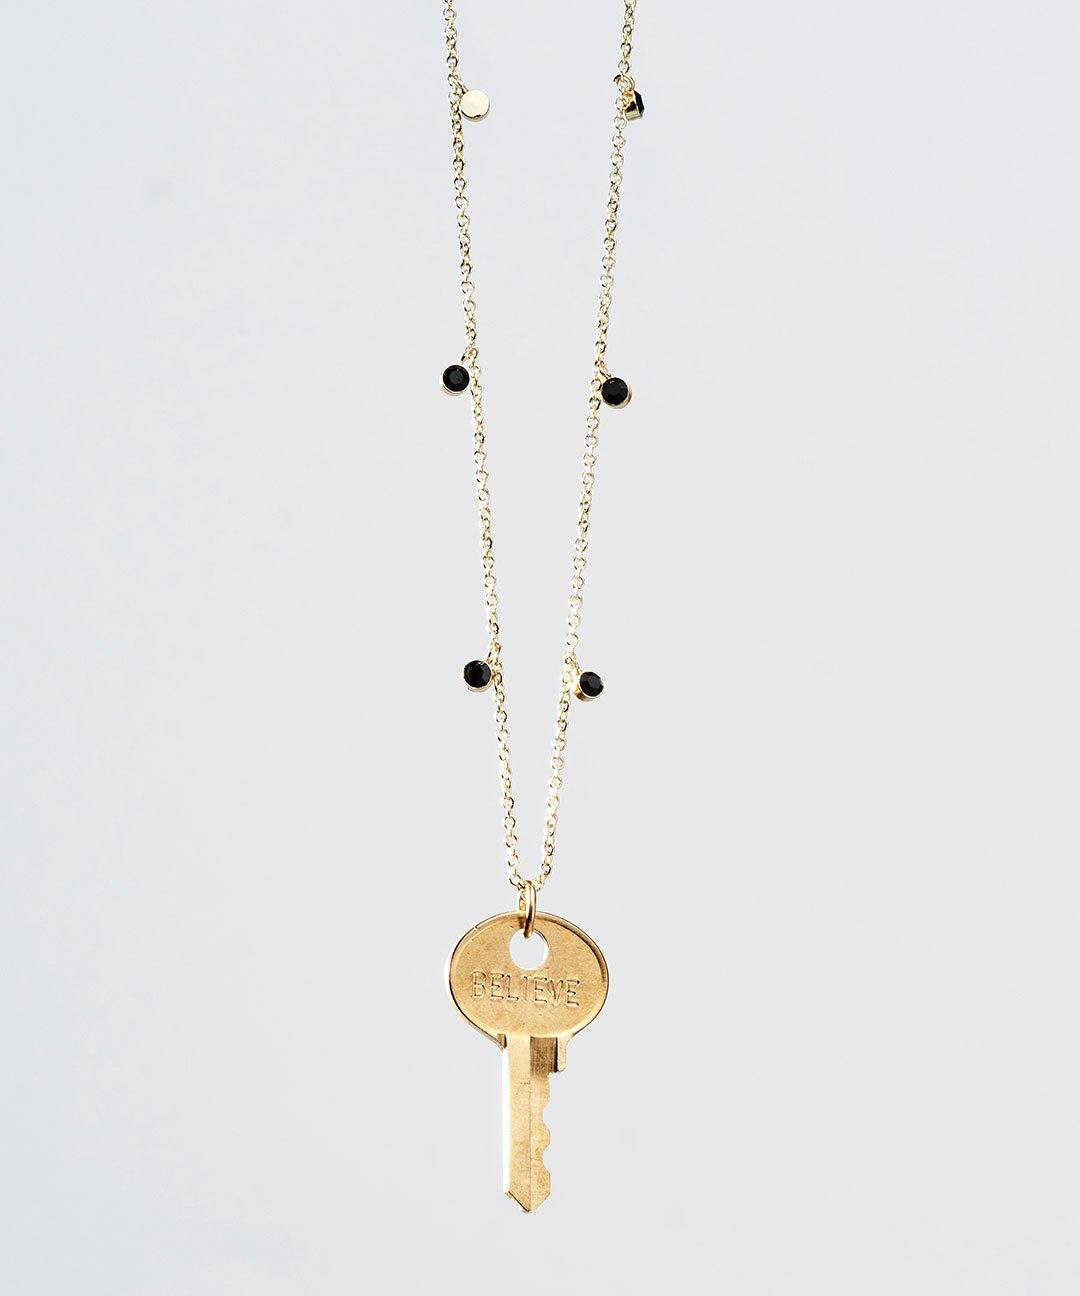 Onyx Droplet Beaded Dainty Key Necklace Necklaces The Giving Keys BELIEVE ONYX